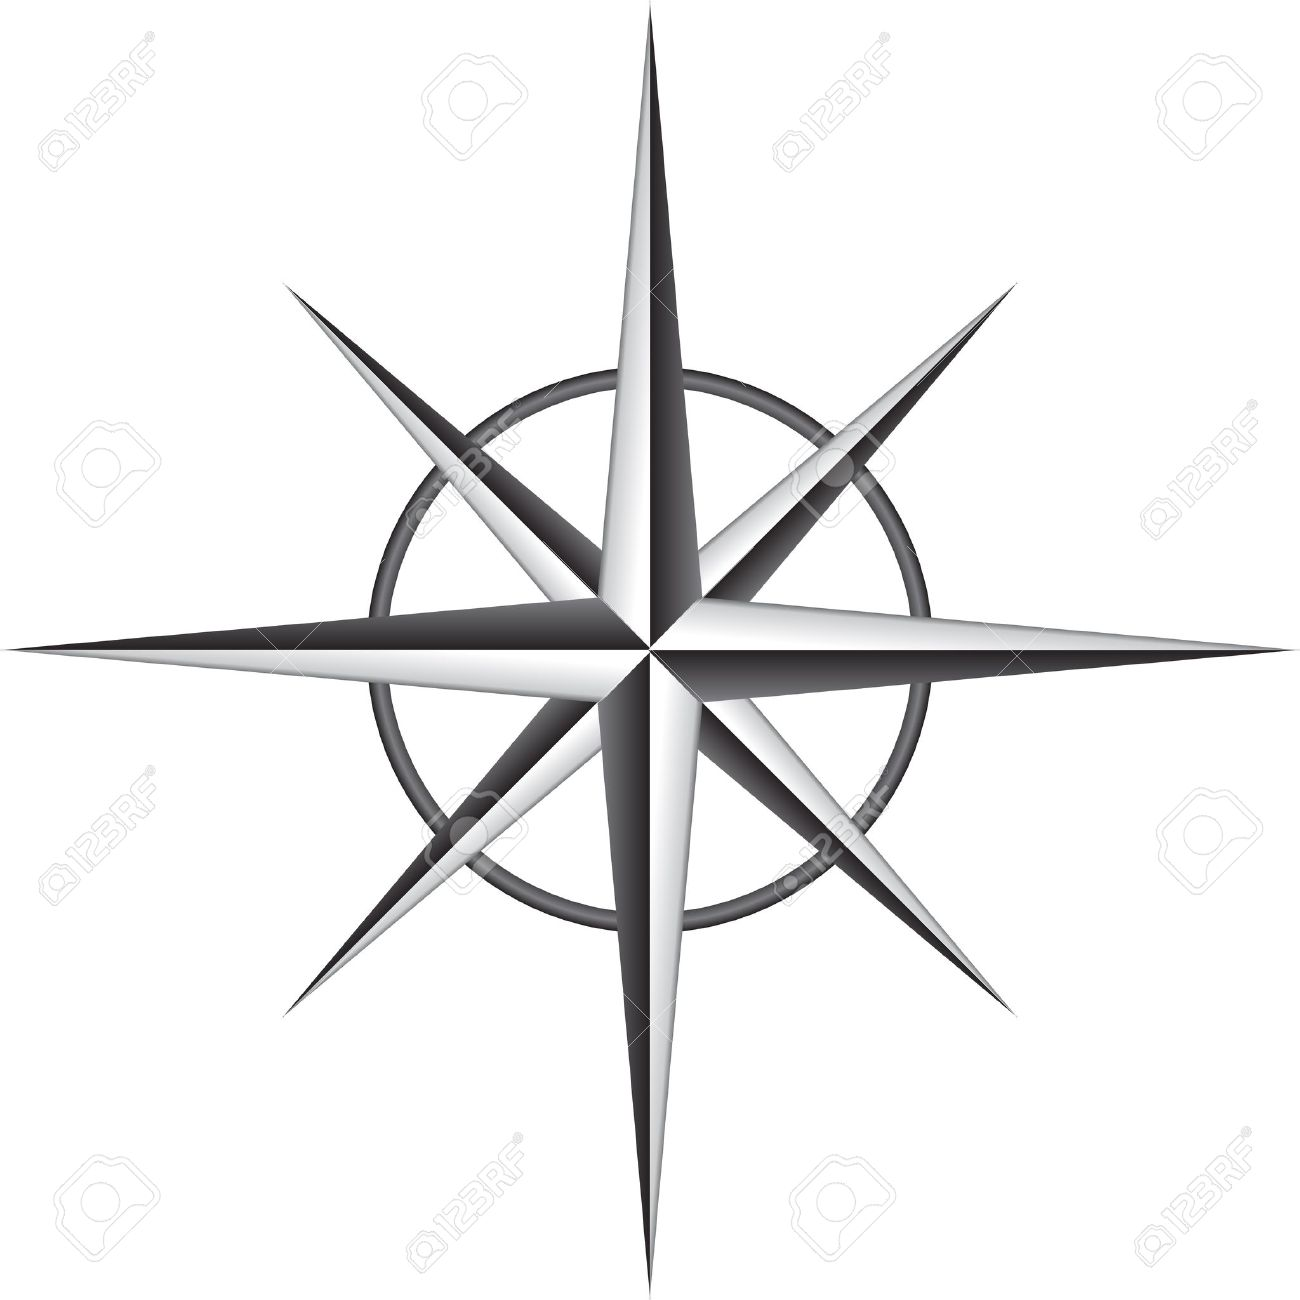 1300x1300 Illustration Of Compass Rose Stencil Projects